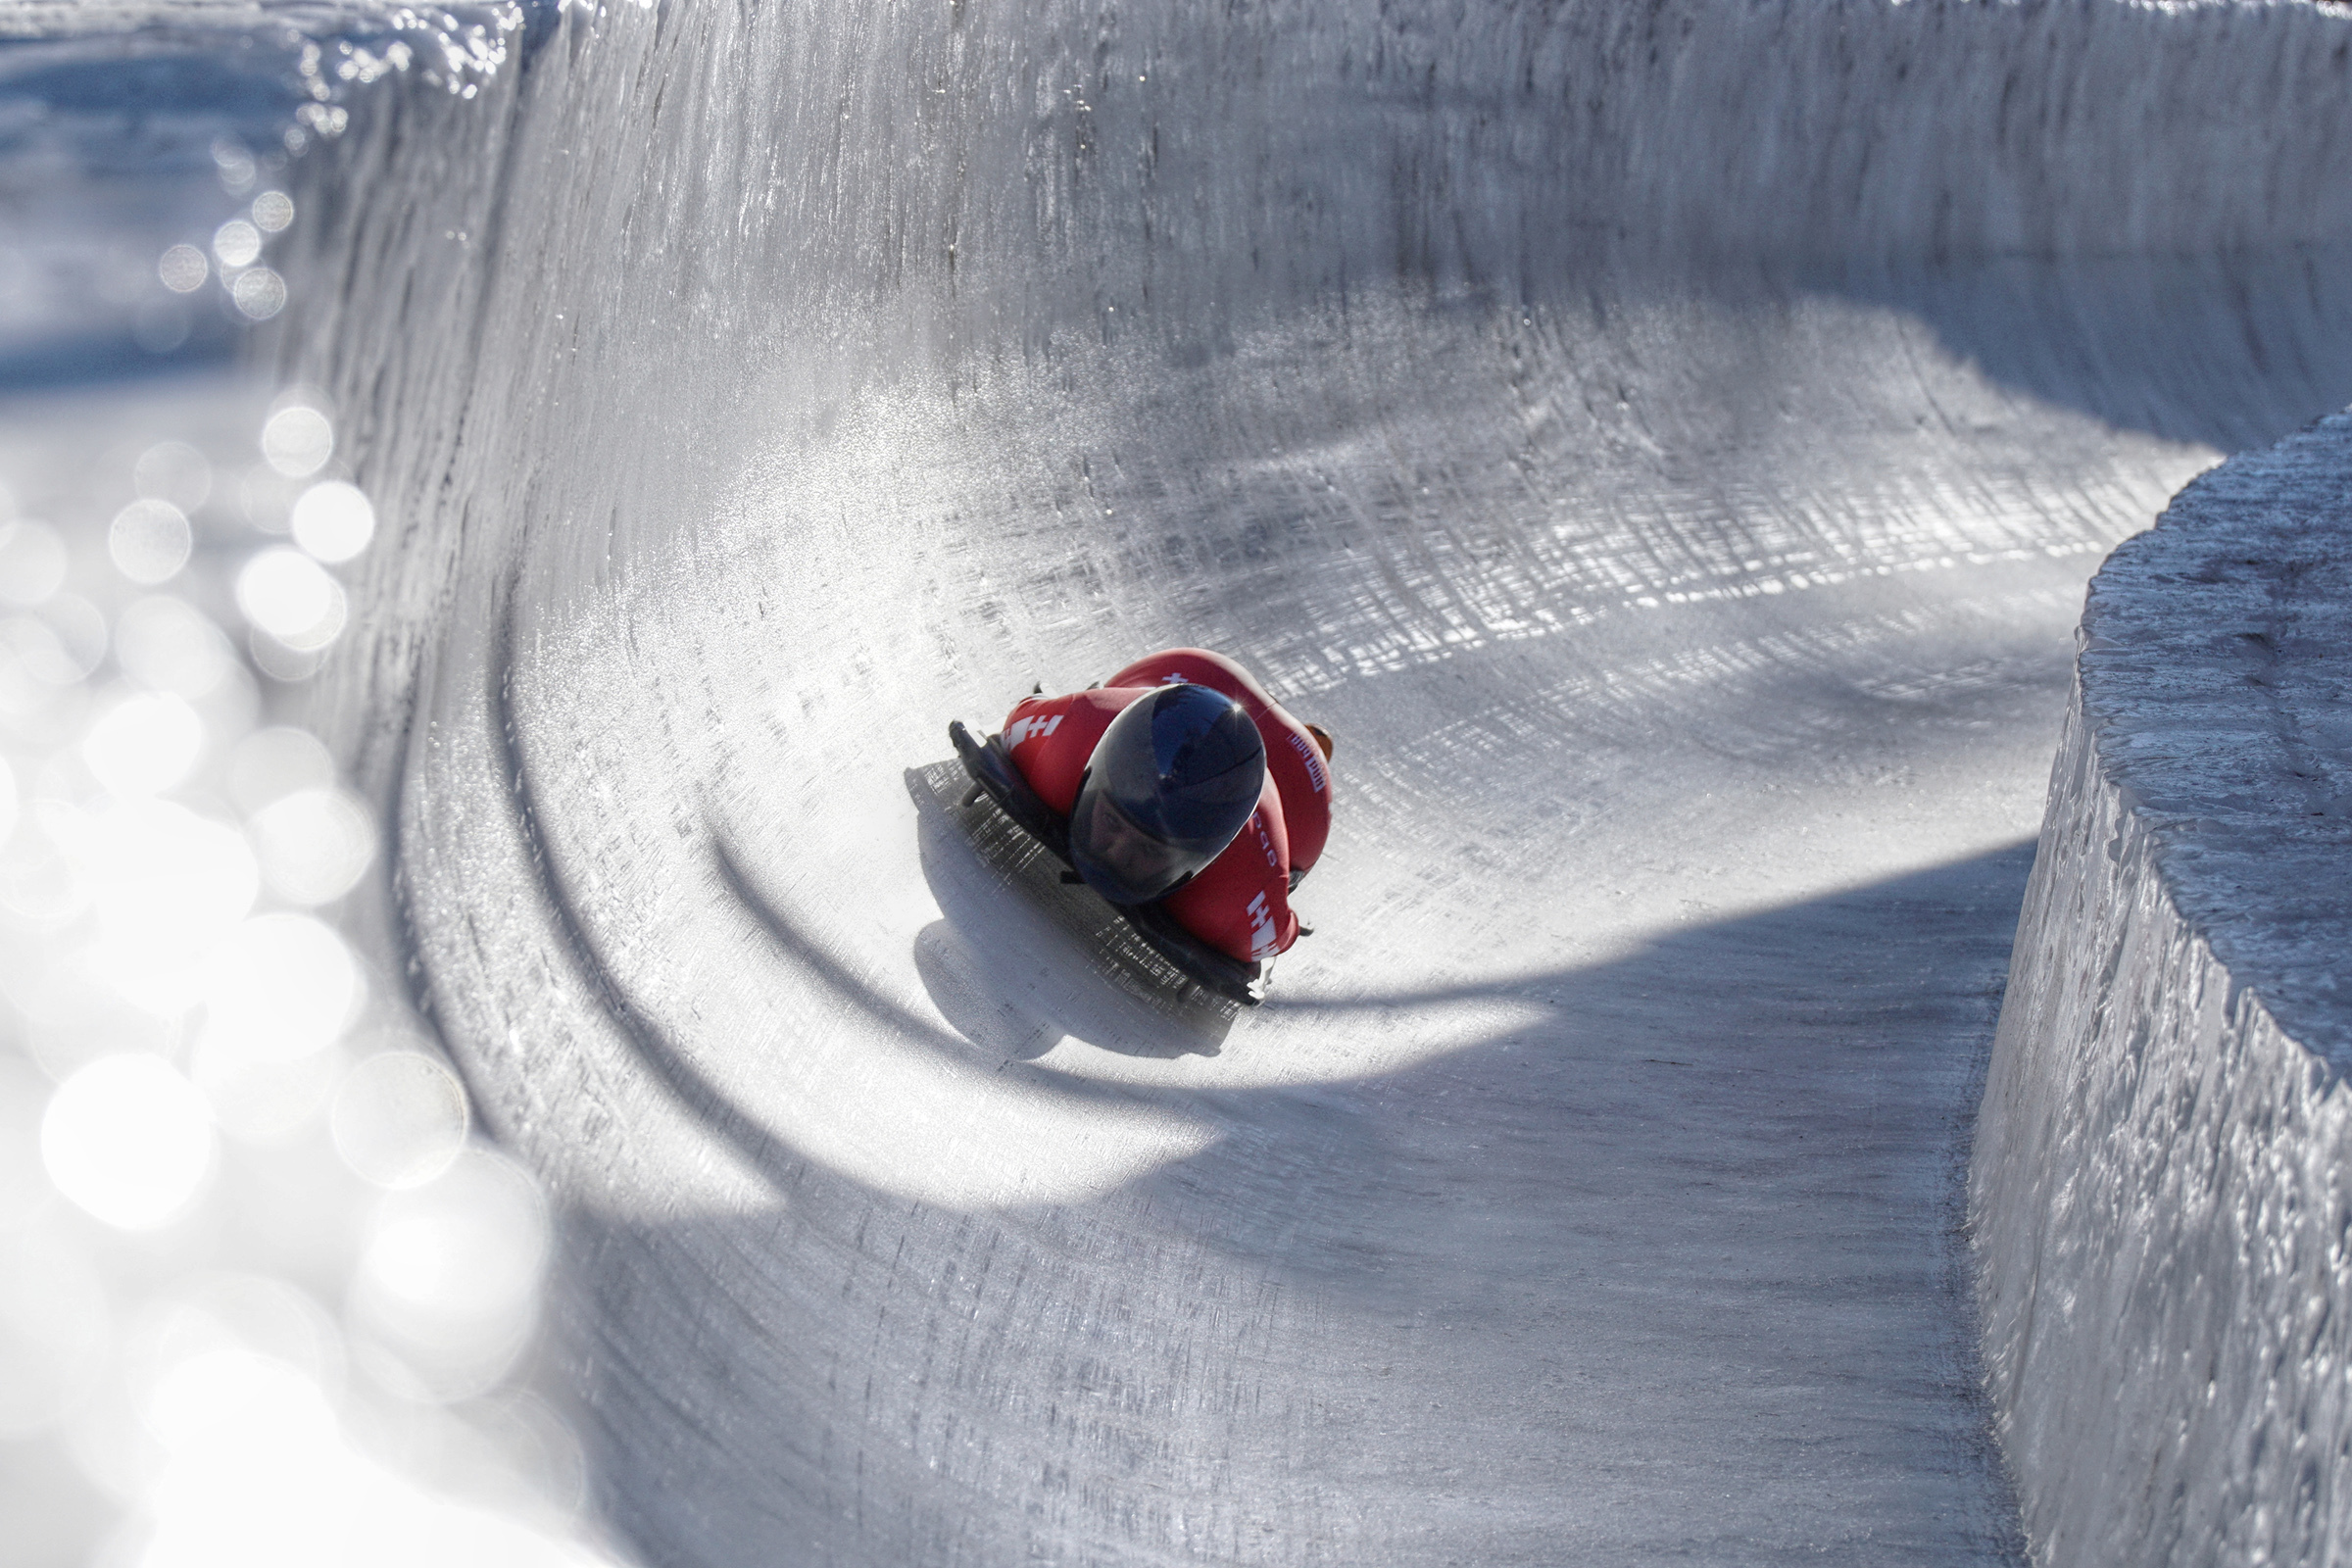 Swiss Championships Bobsleigh and Skeleton